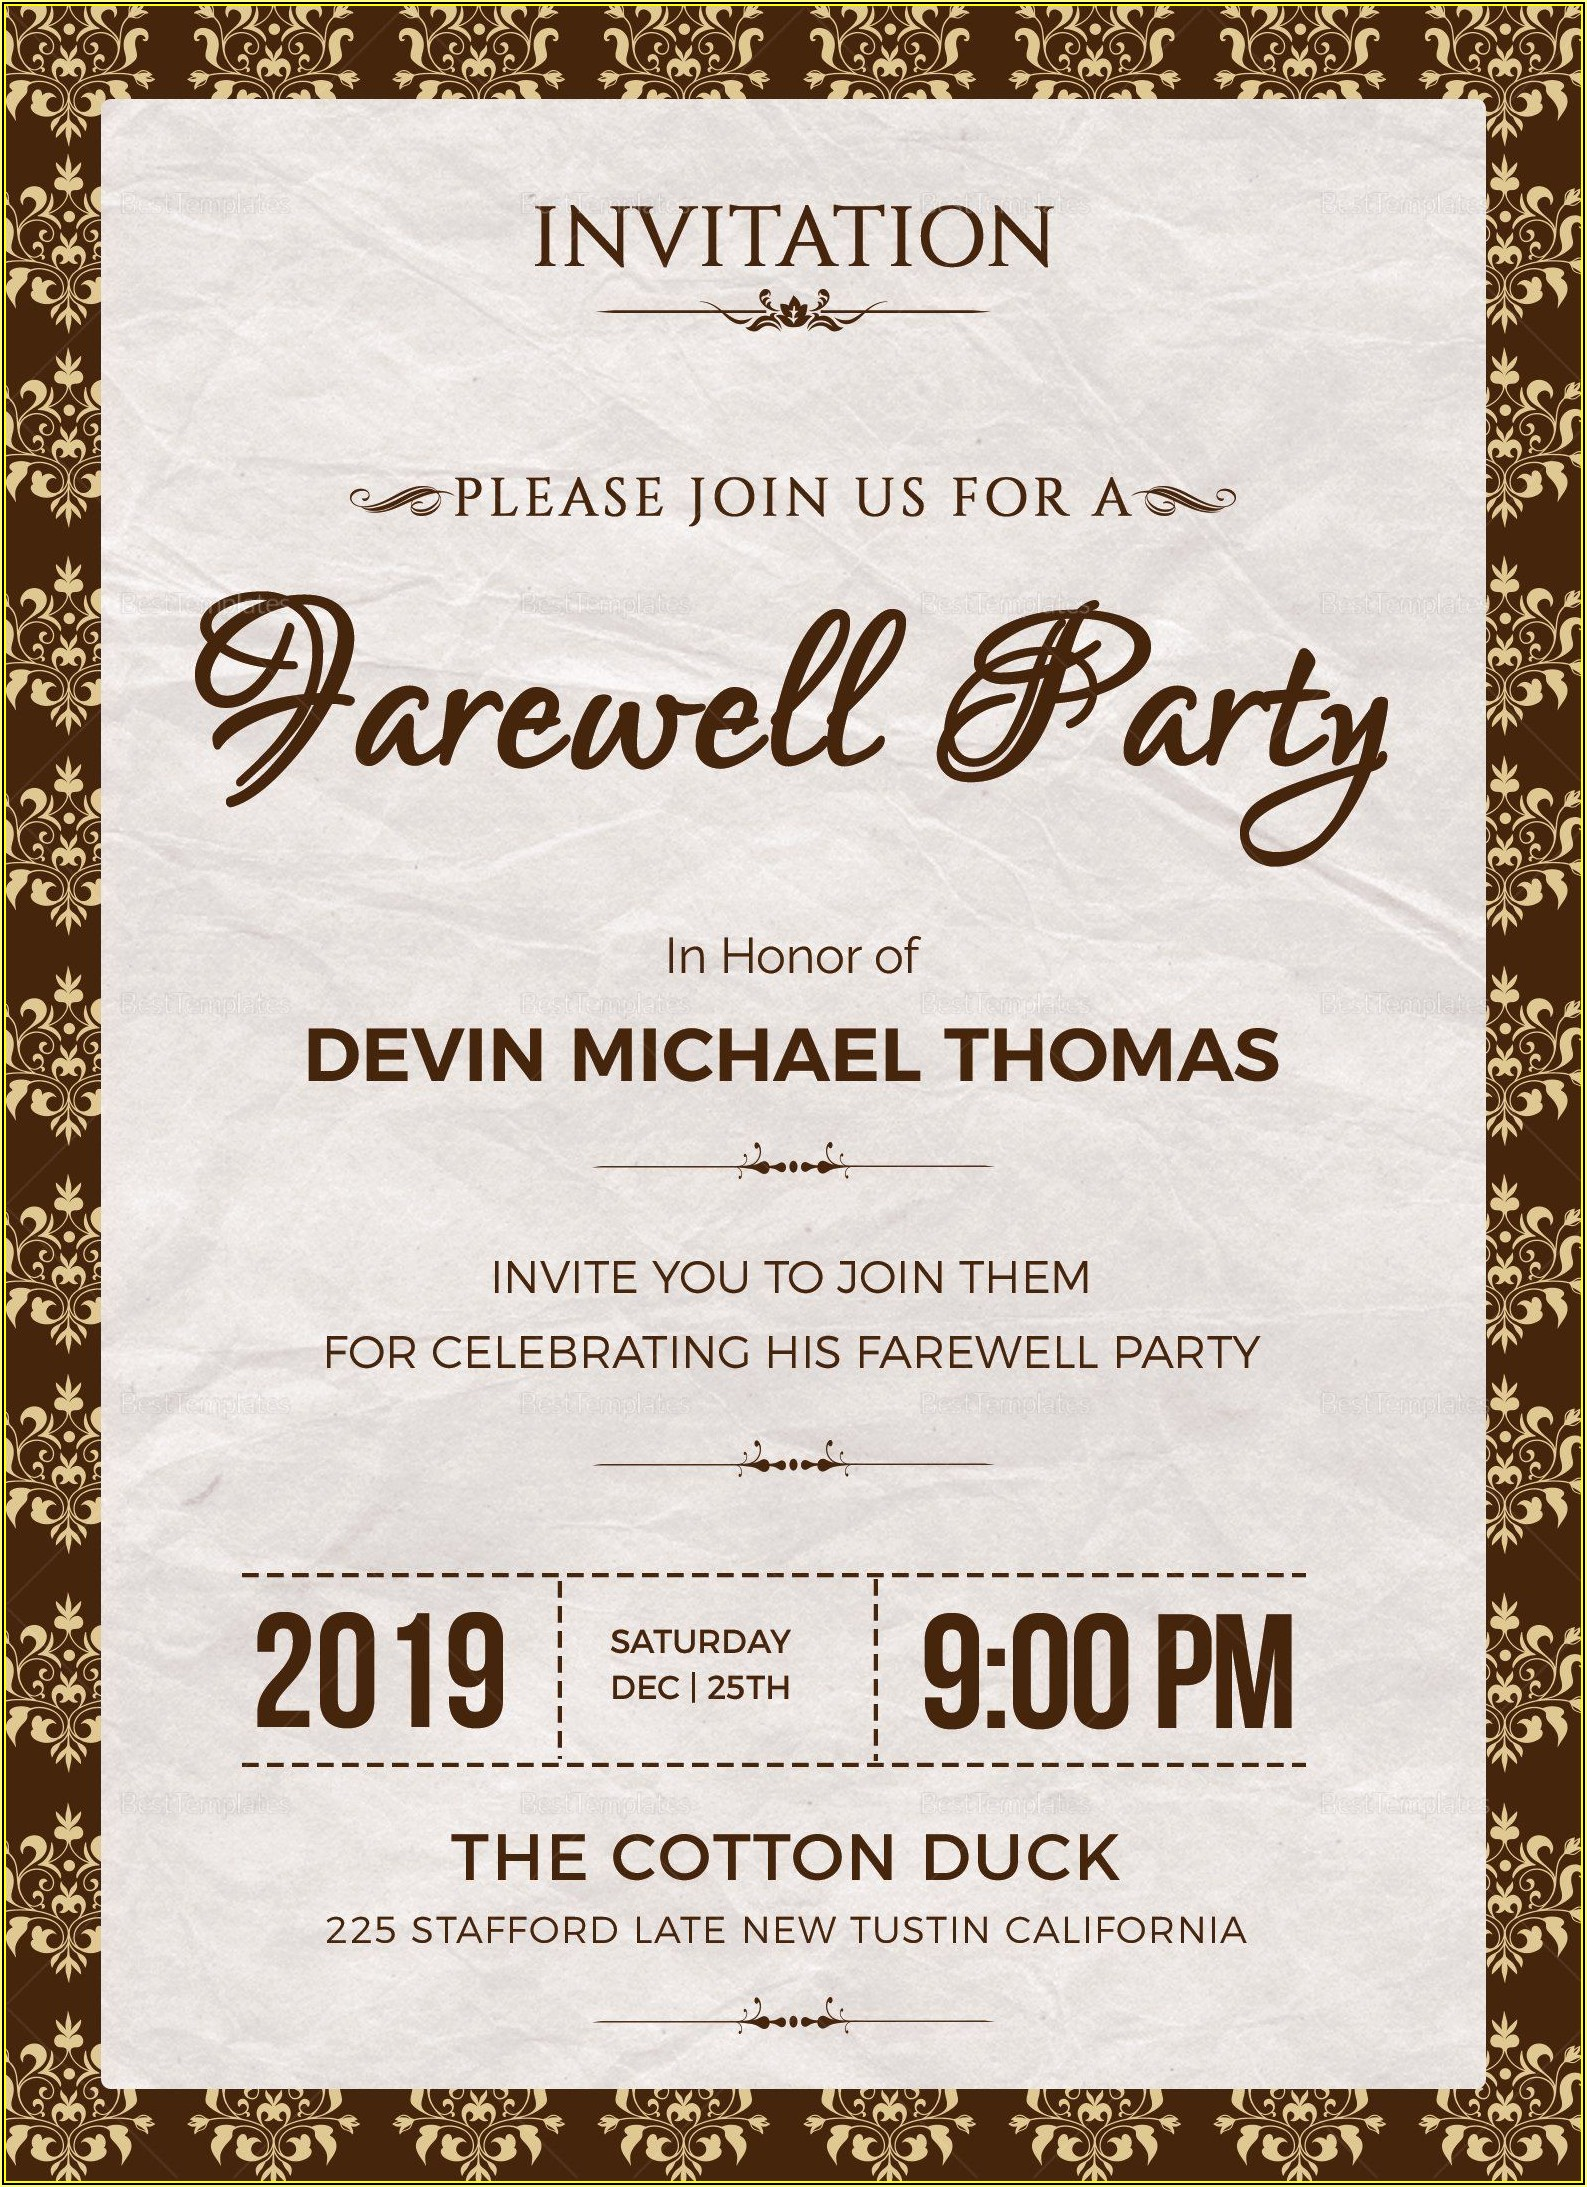 Farewell Party Invitation Template Free Word